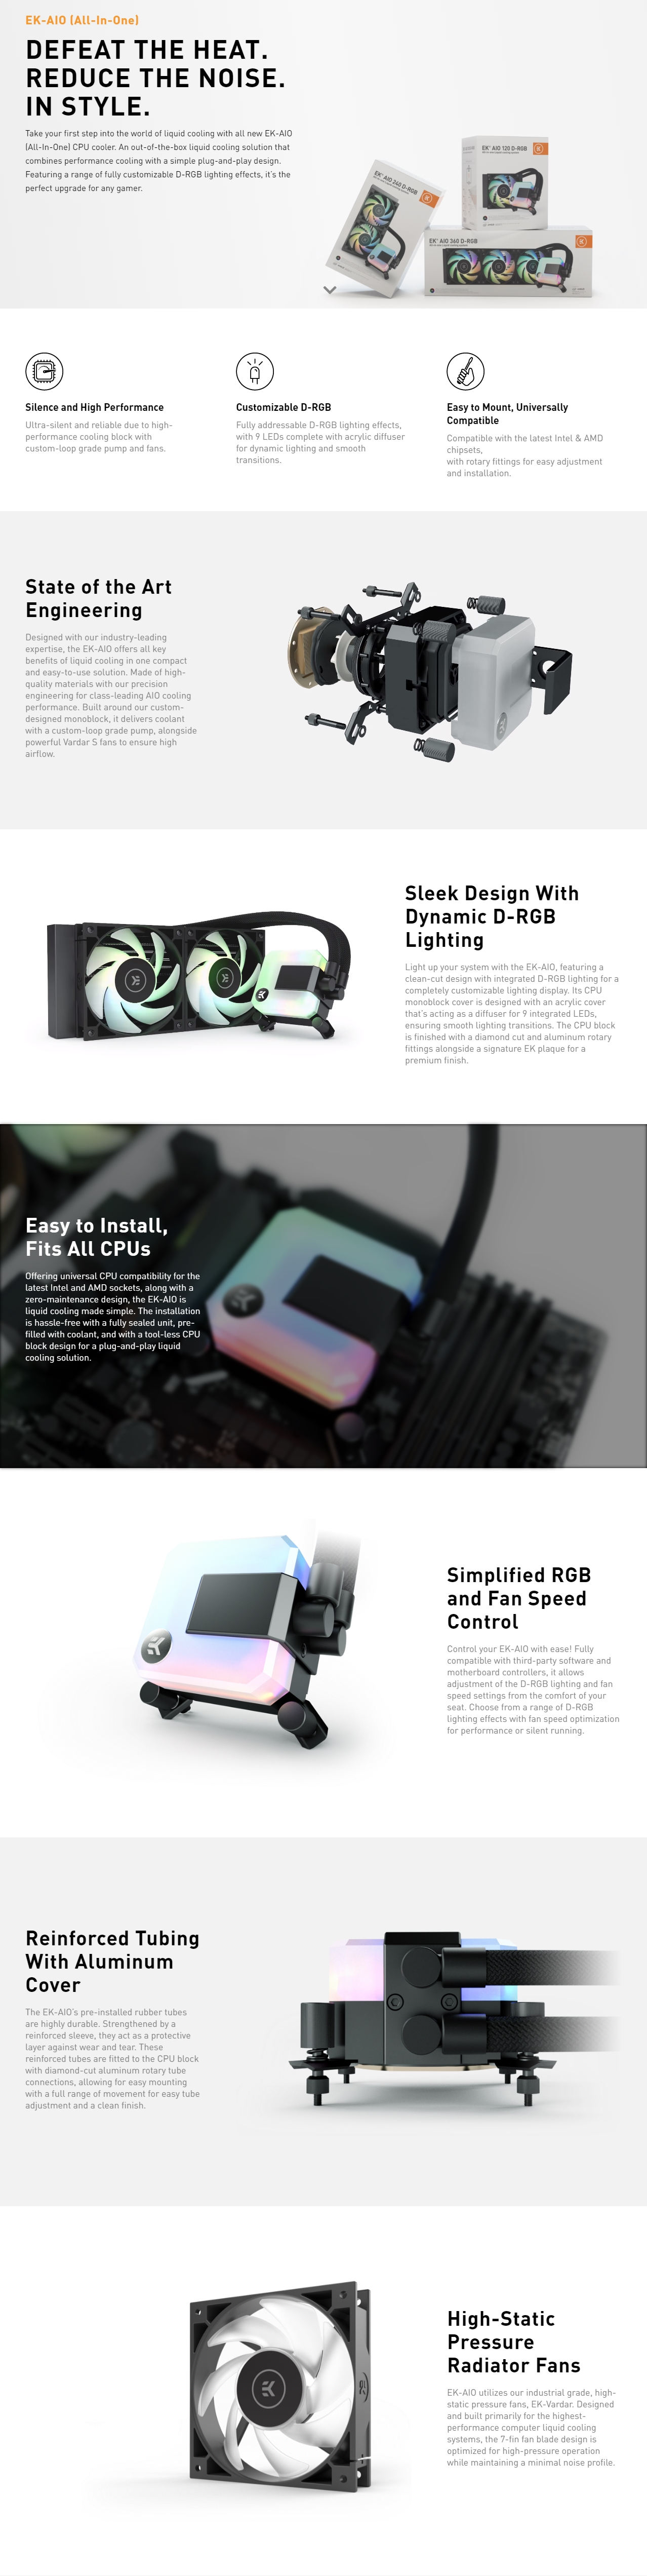 A large marketing image providing additional information about the product EK AIO 240 D-RGB AIO Liquid CPU Cooler - Additional alt info not provided